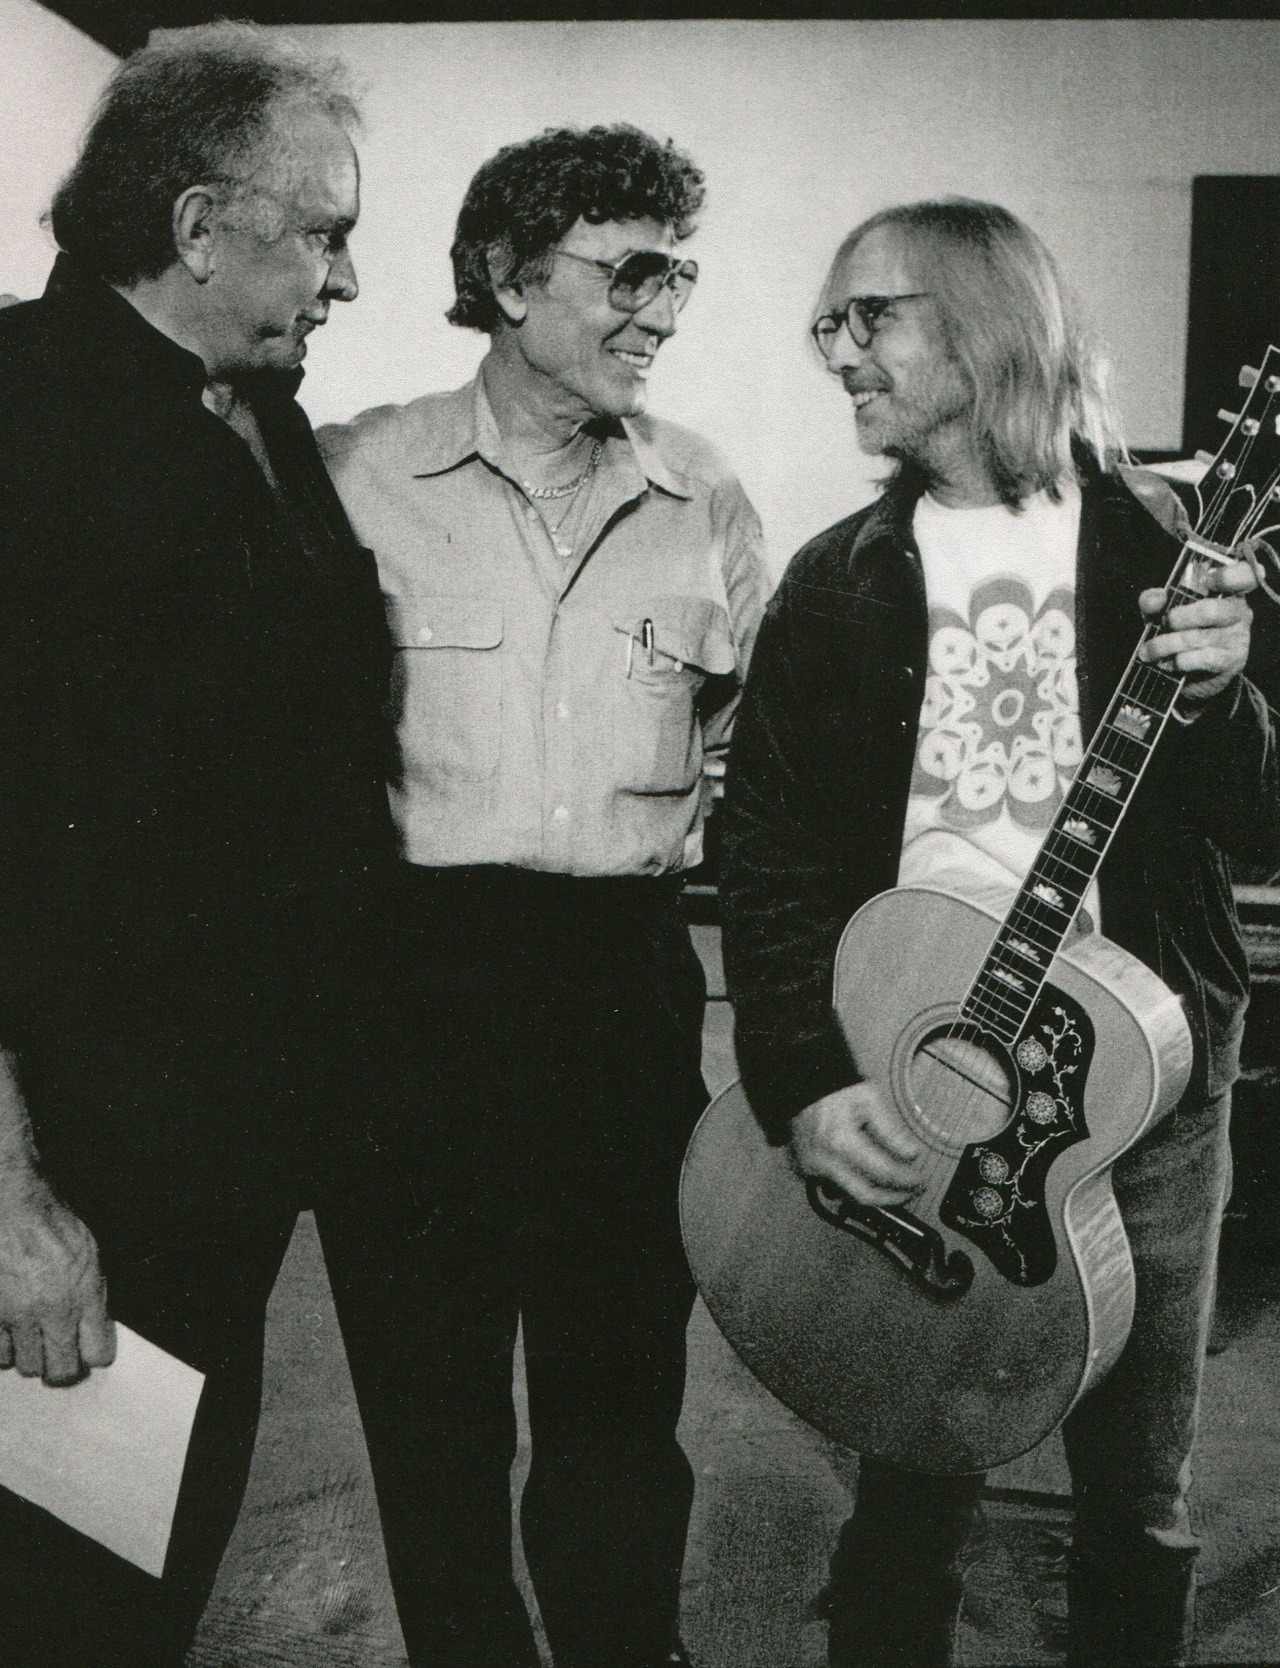 Johnny cash, carl perkins, and tom petty during the  Unchained  sessions.